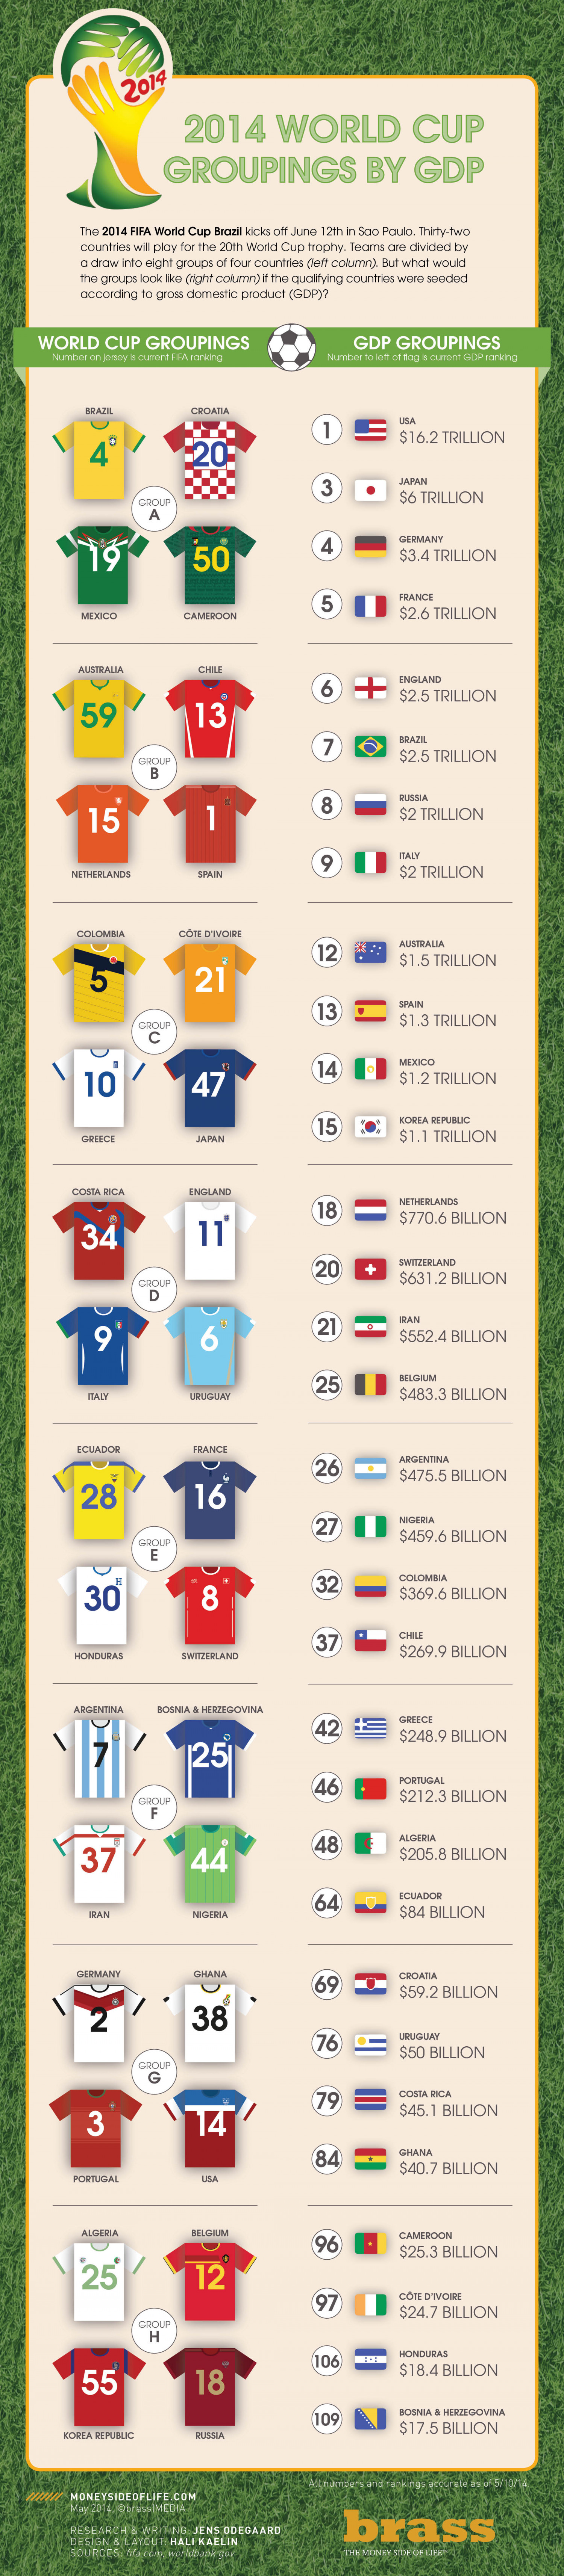 2014 World Cup Groupings by GDP Infographic